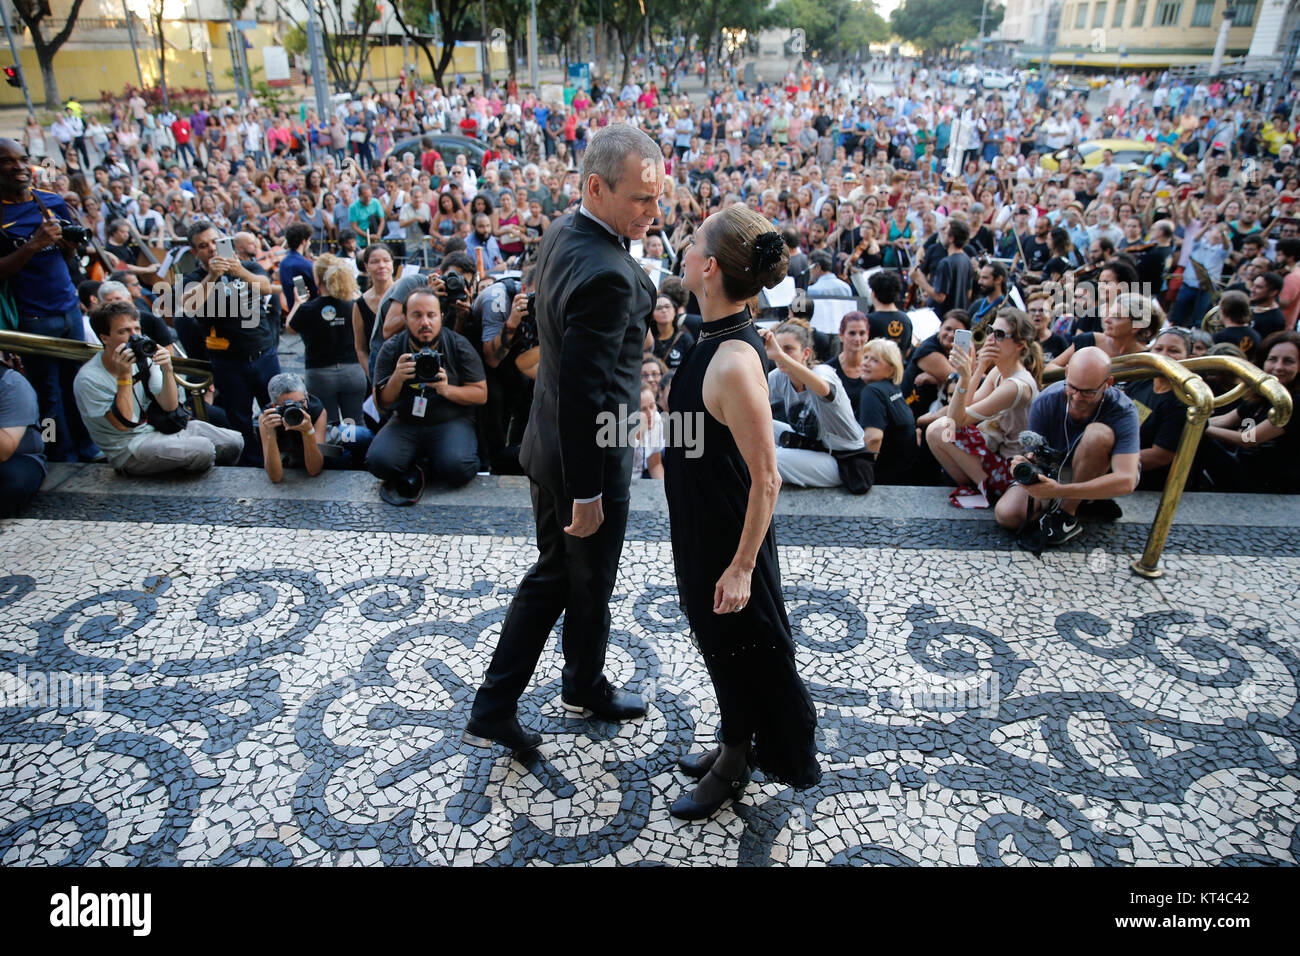 Ballerina Ana Botafogo dances with Carlinhos de Jesus during a protest against government funding cuts to the arts - Stock Image